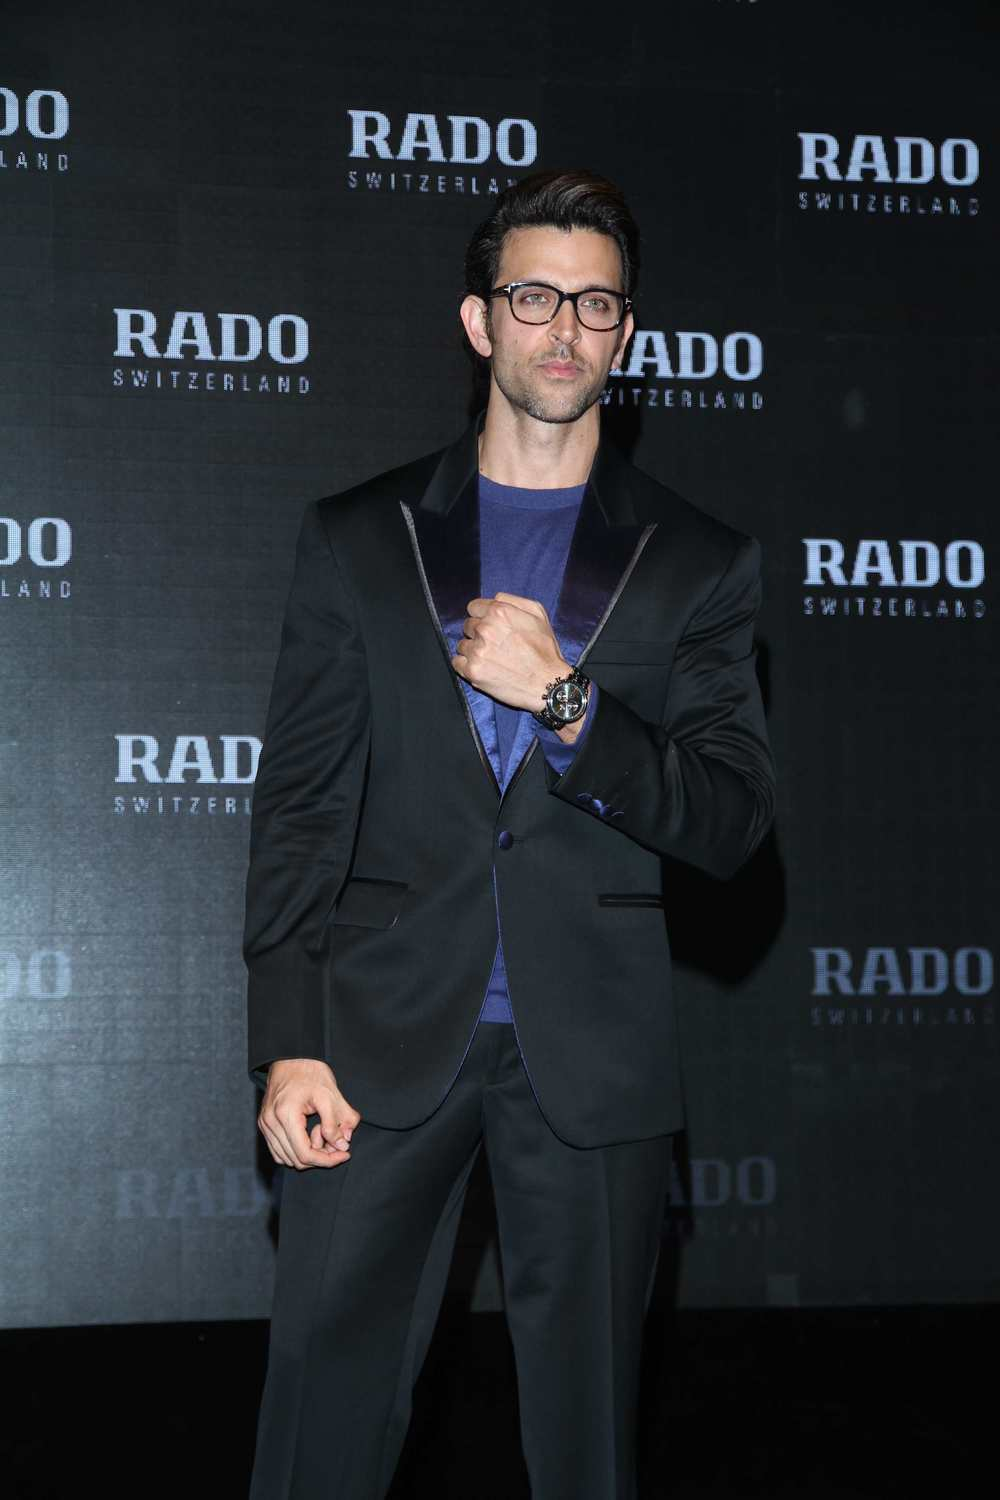 Hrithik Roshan launches the RADO Dia-master collection over a cocktail evening.jpg